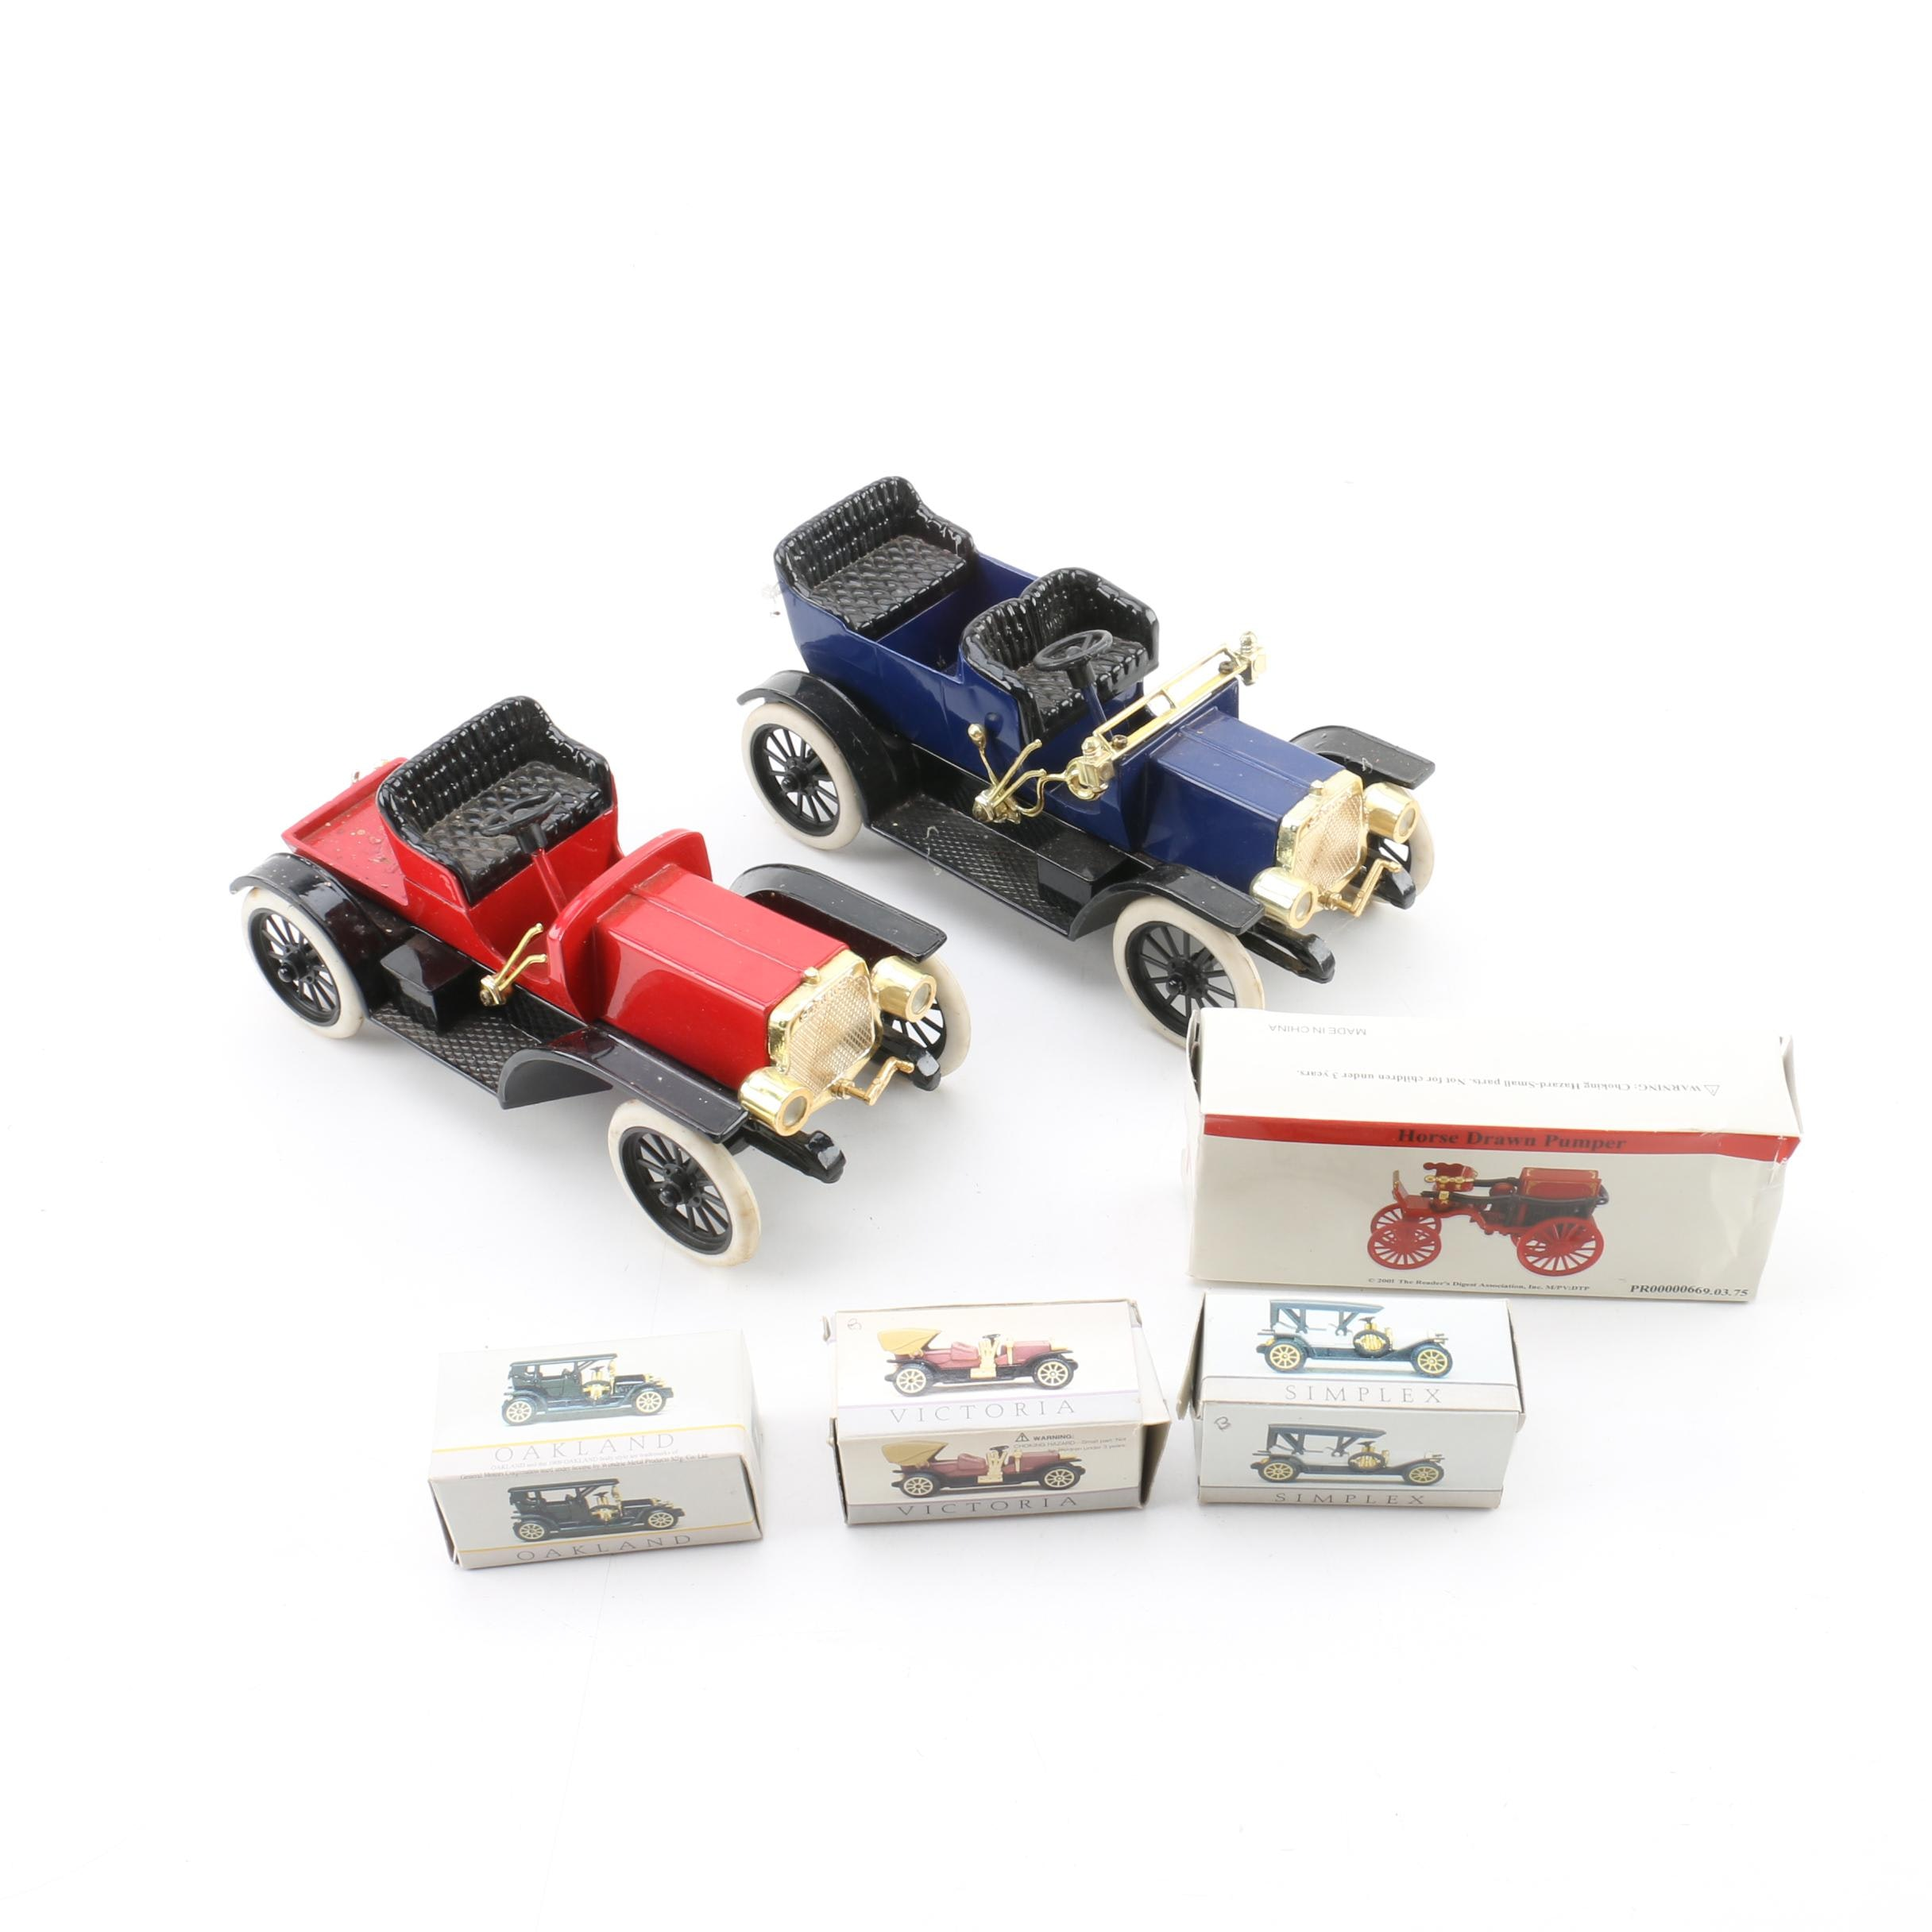 Die-Cast Scale Replica Antique Cars